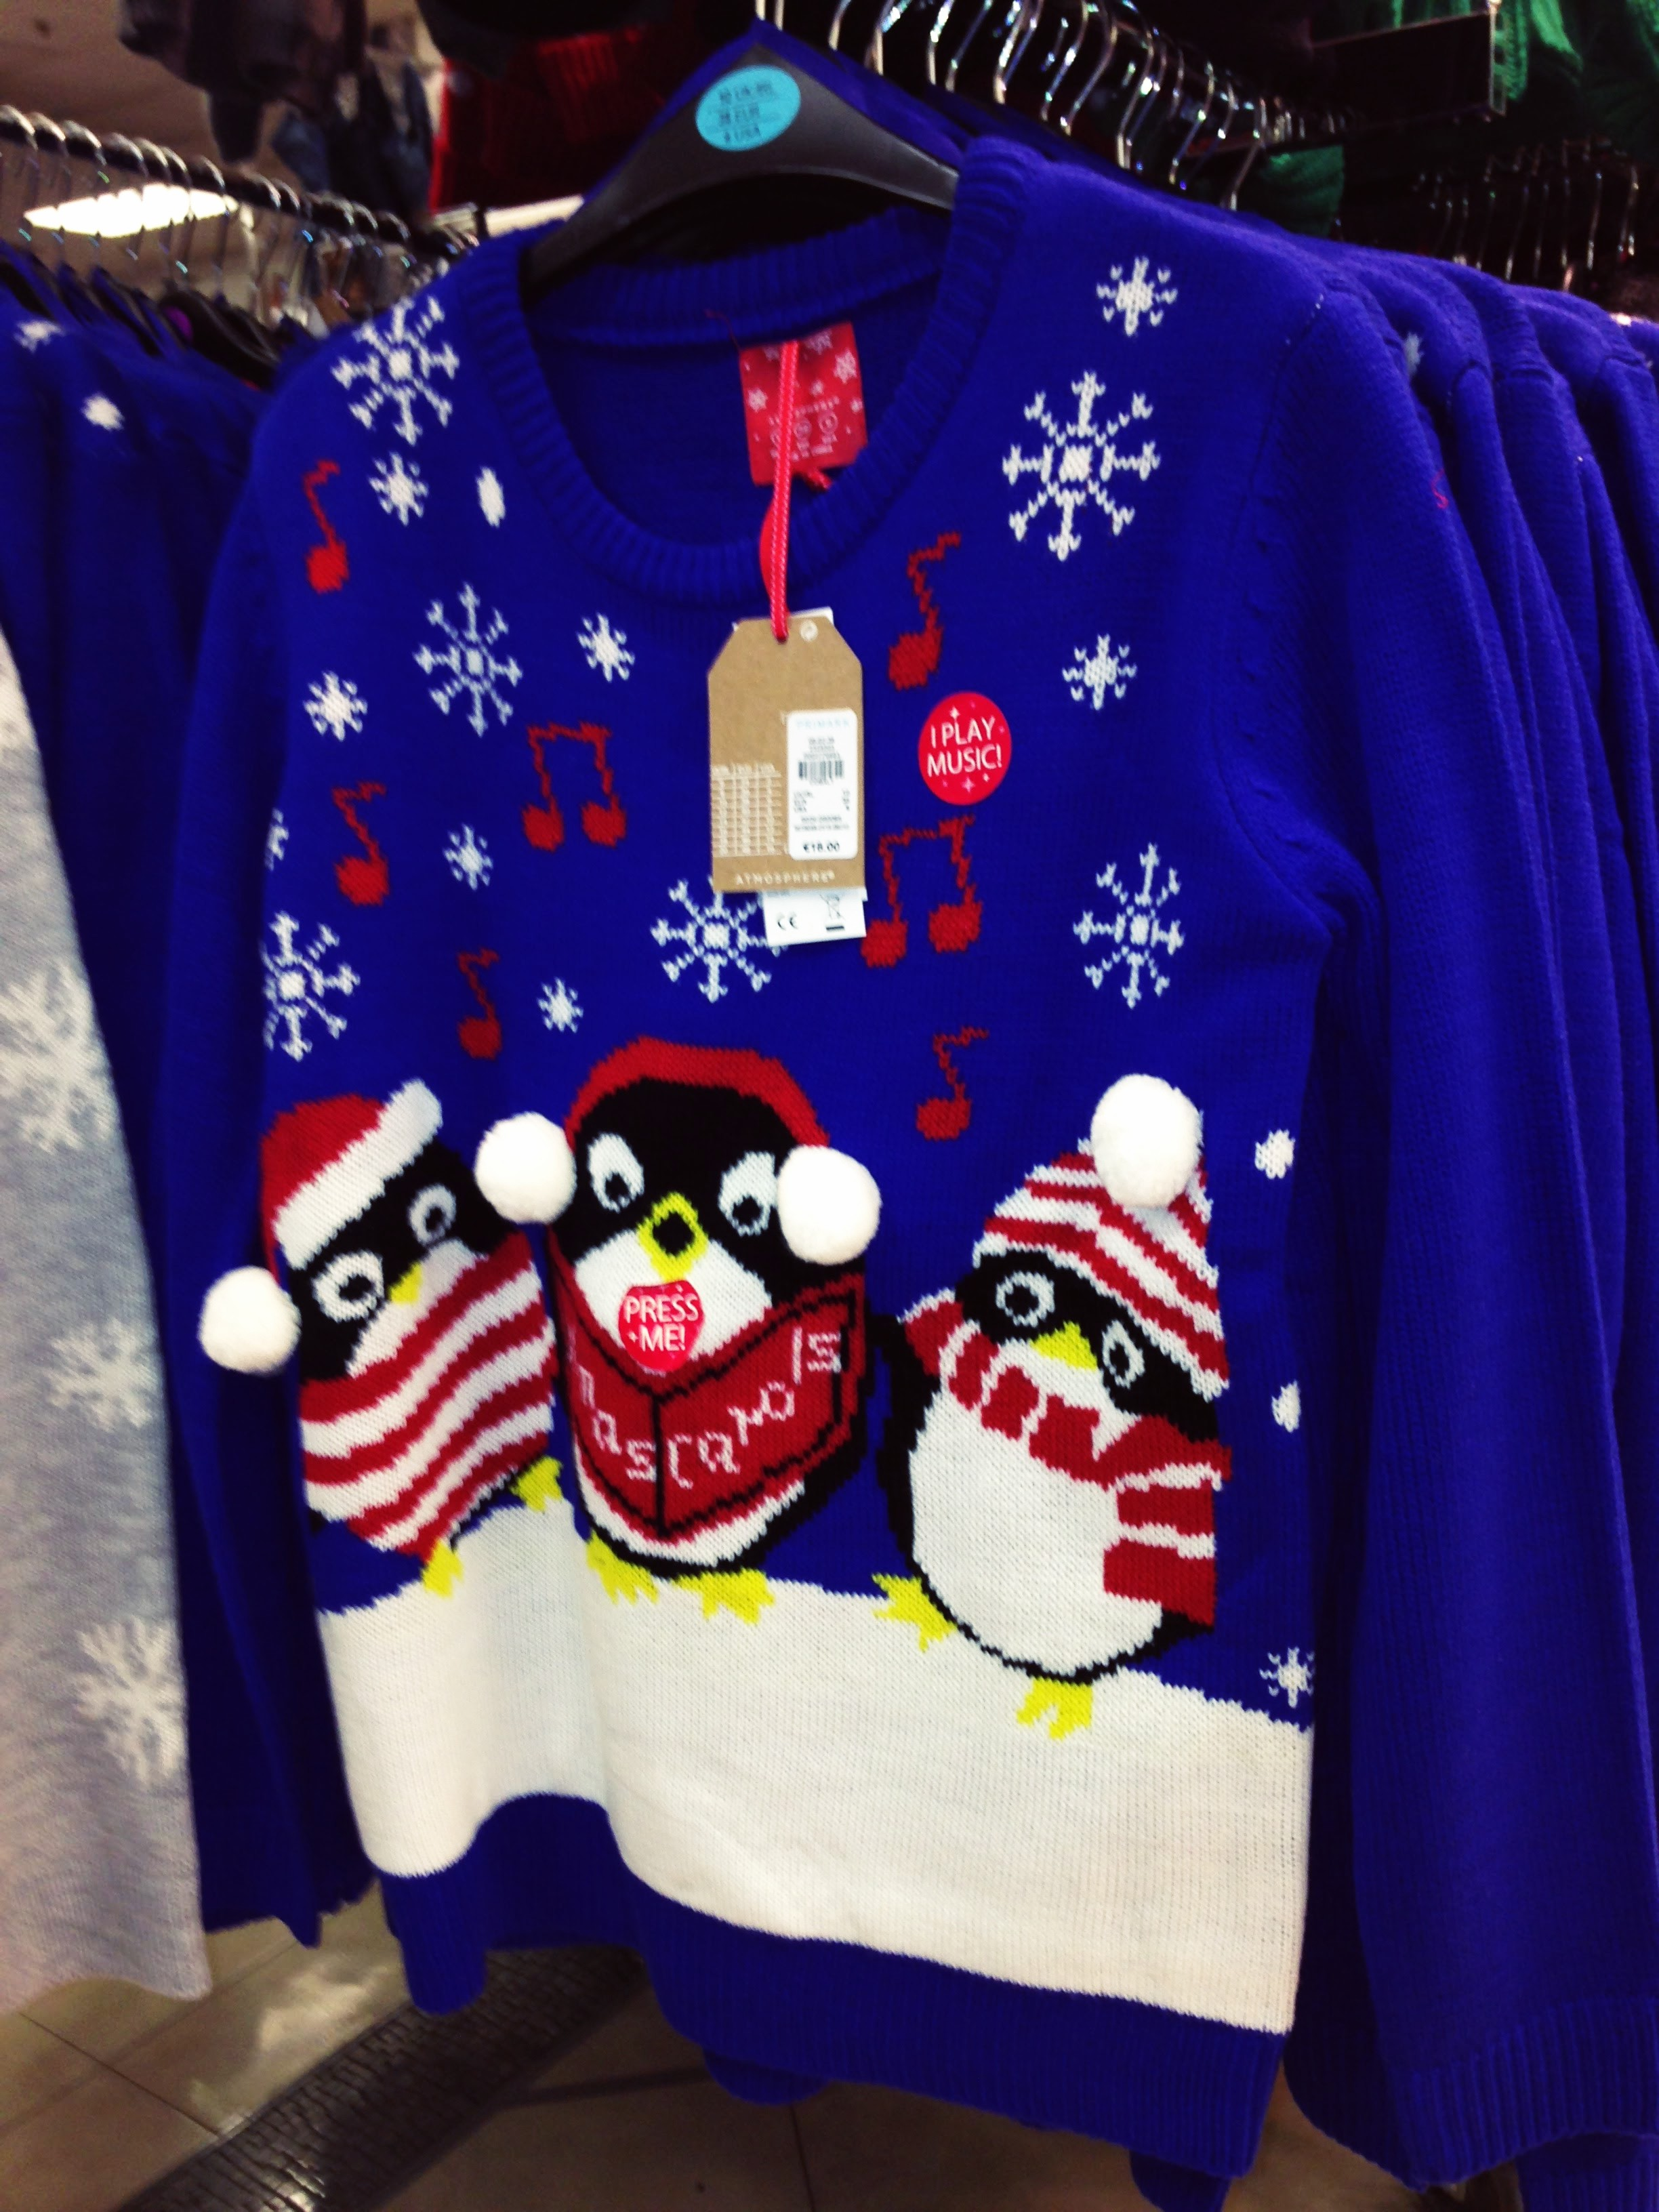 Novelty blue Xmas sweater €16.00 Penneys